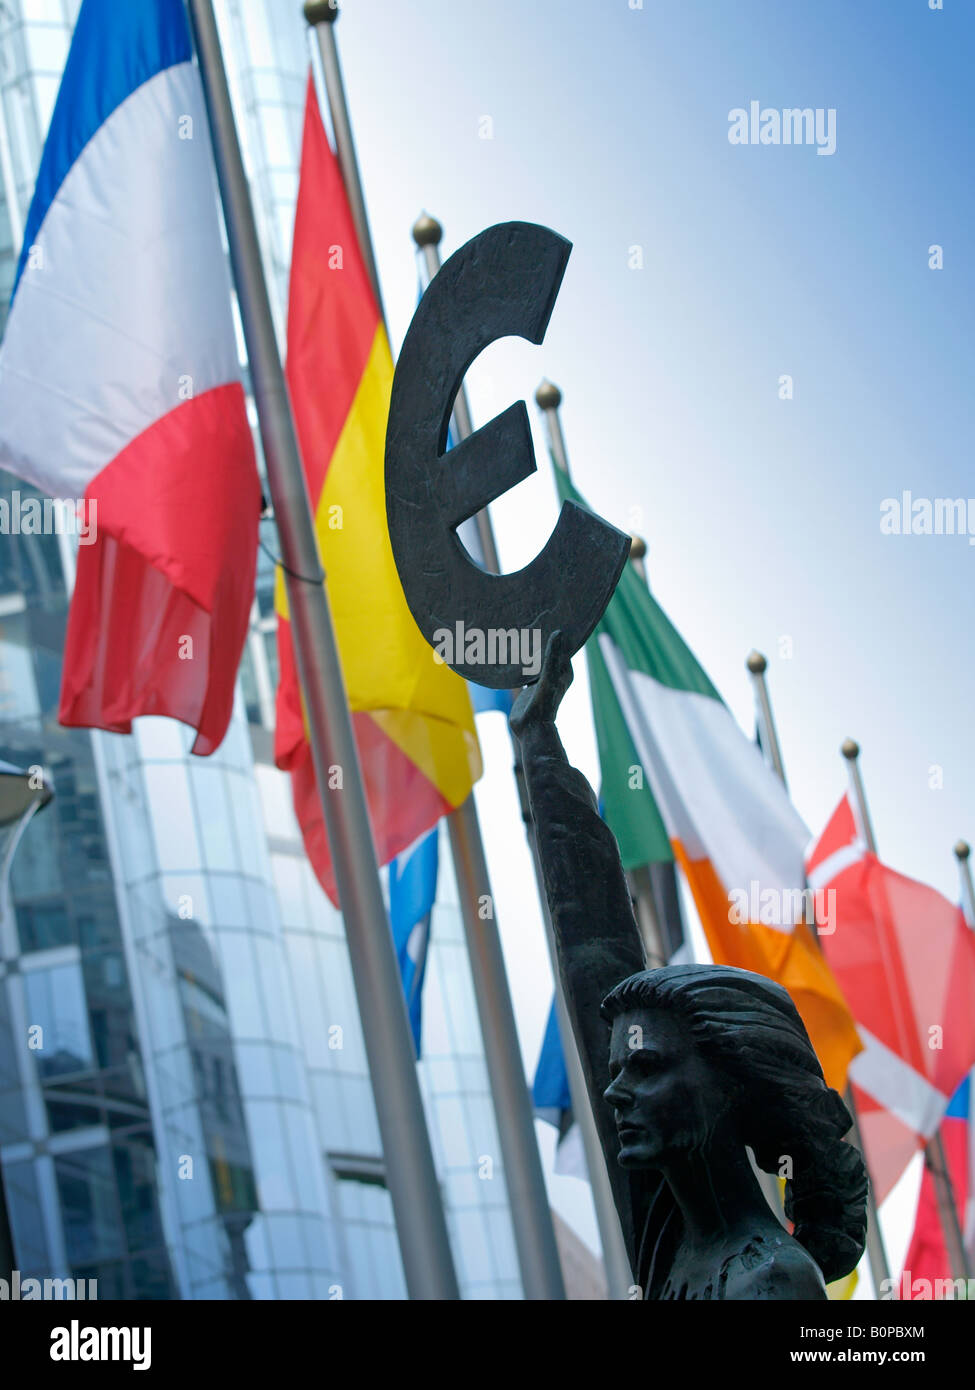 Bronze statue woman europa holding Euro currency sign Brussels Belgium with many national flags in the background - Stock Image